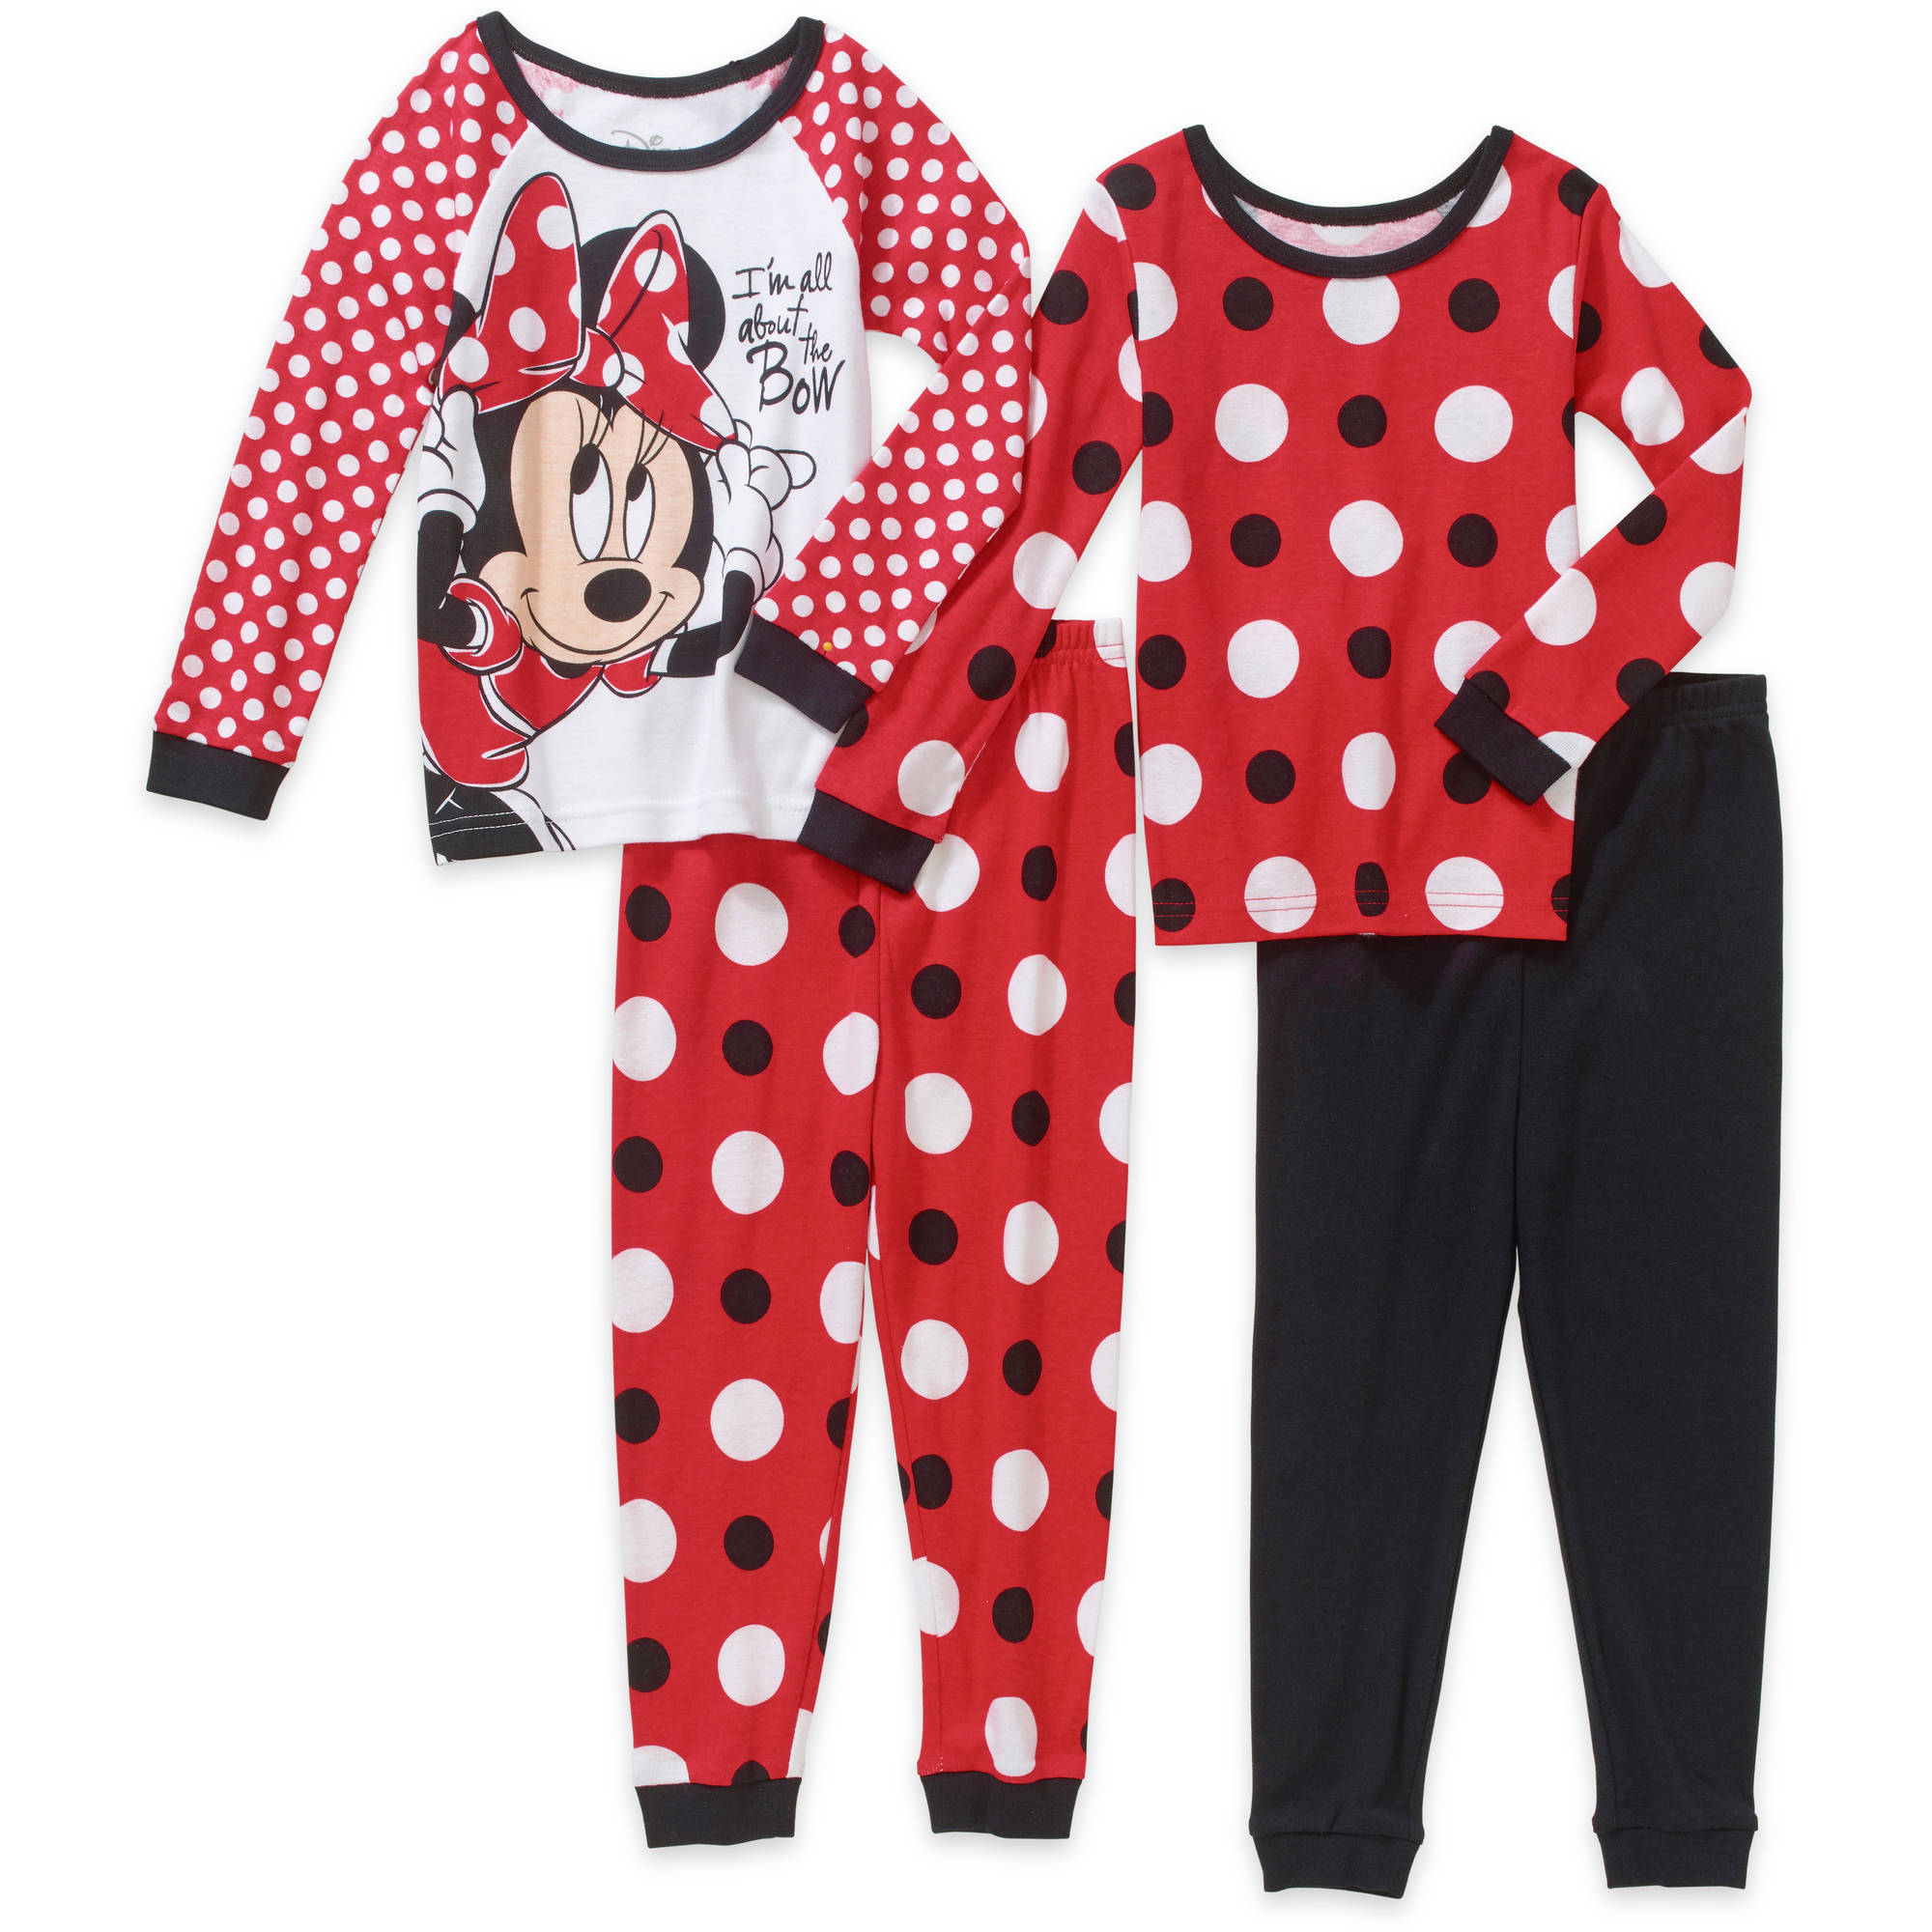 Minnie Mouse Toddler Girl Cotton Tight Fit Pajamas 4pc Set